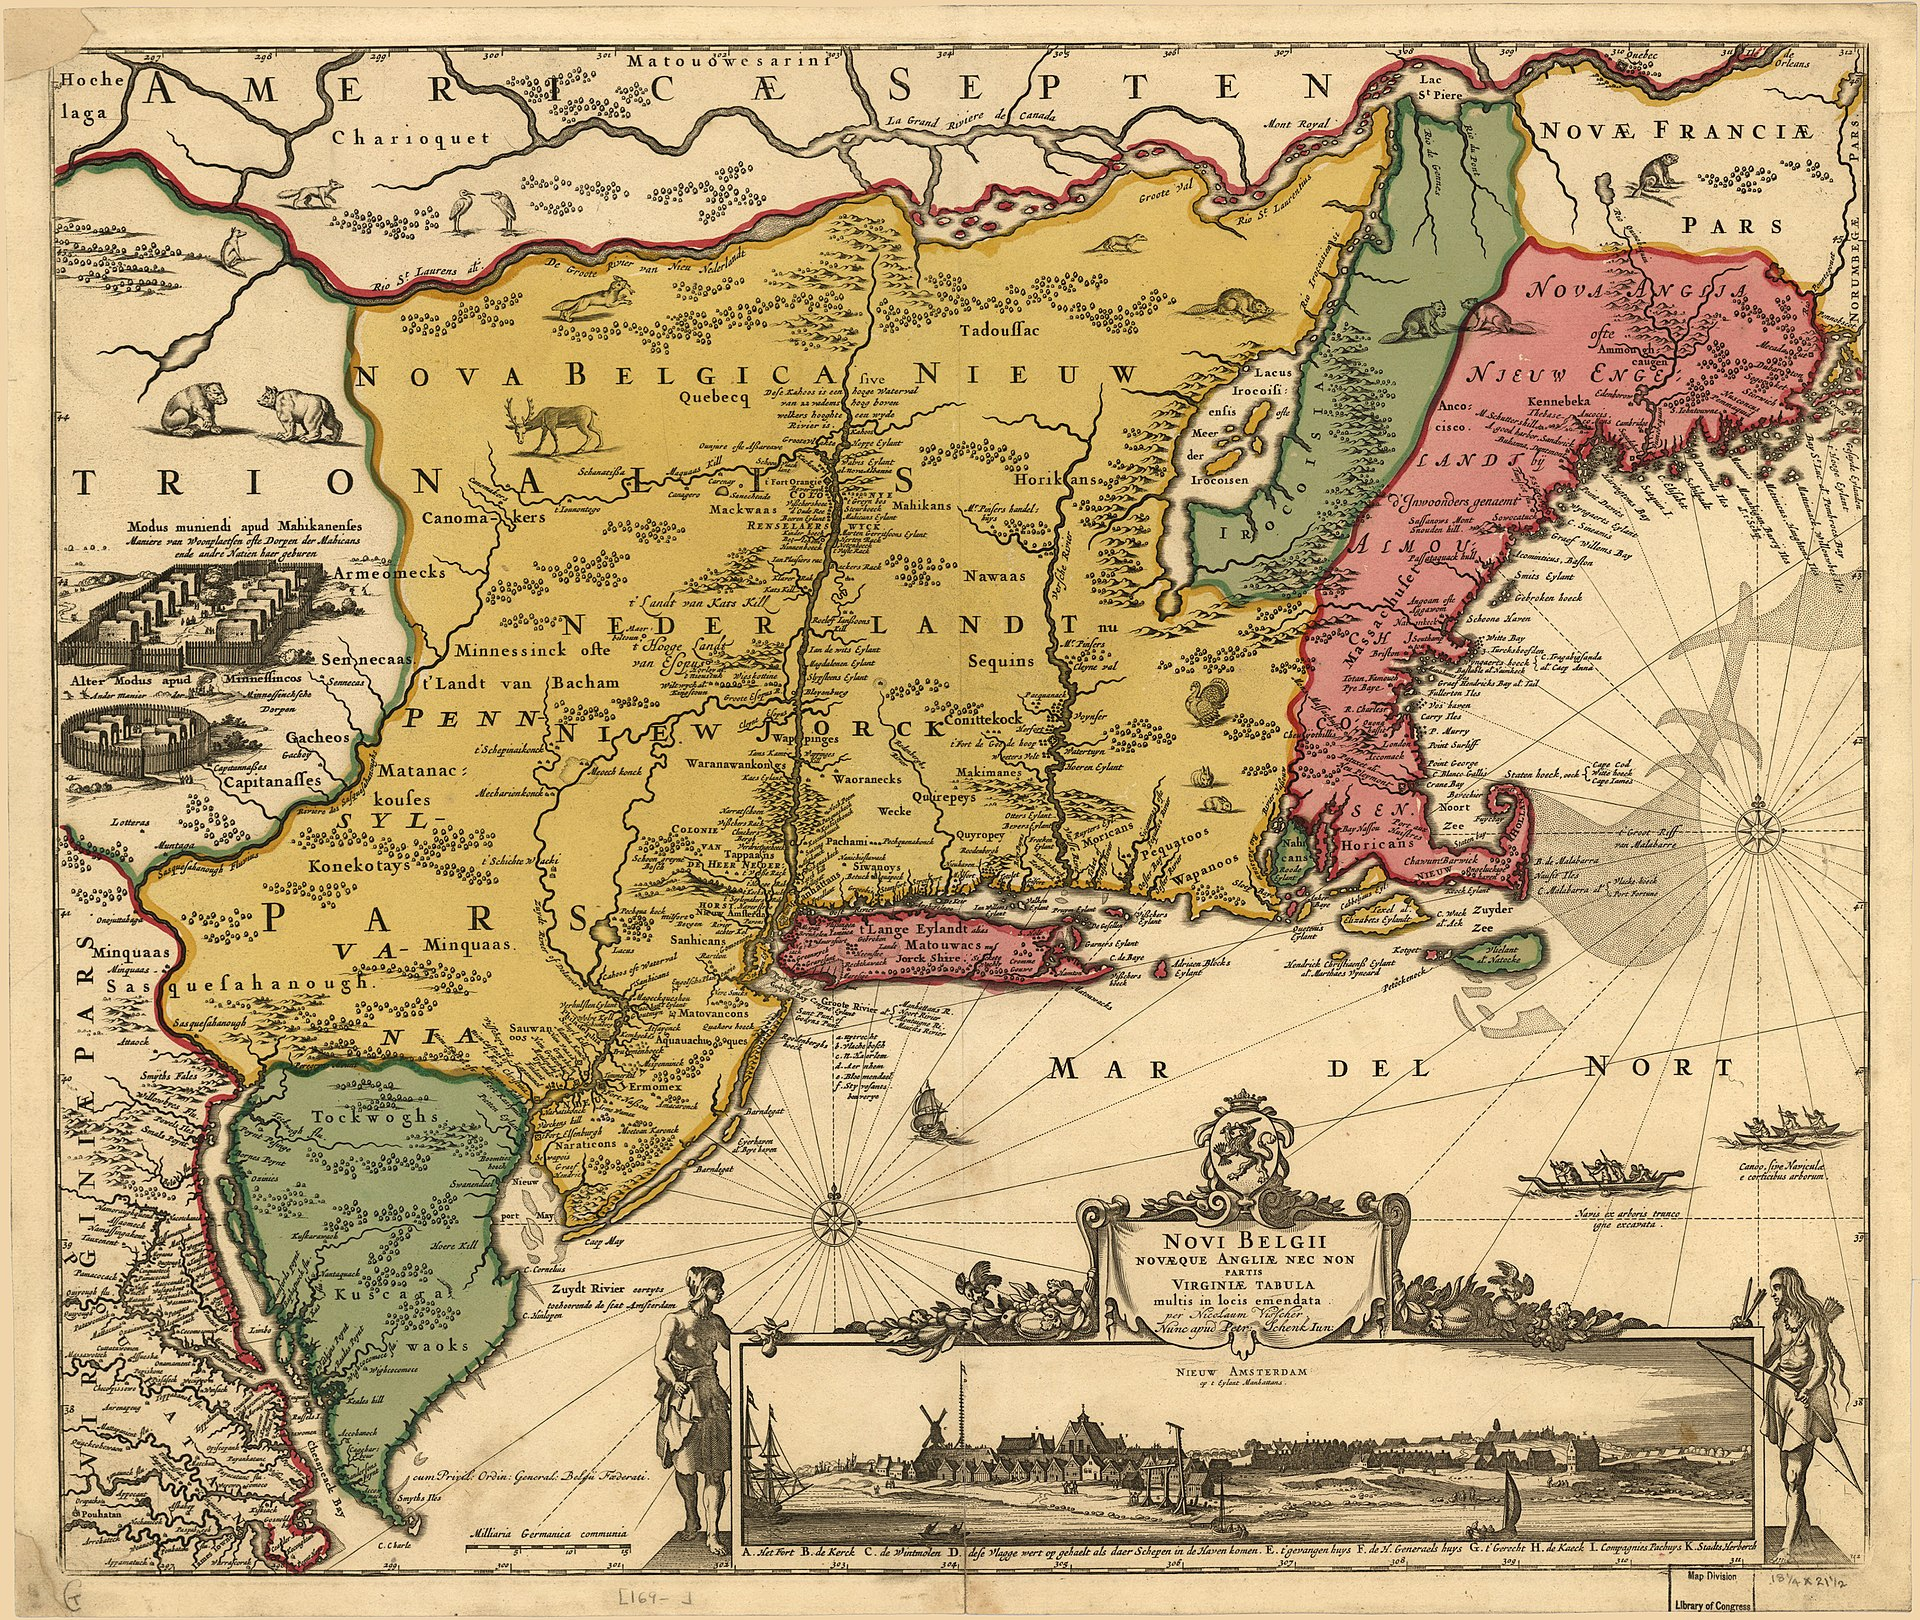 Difference BetweenNew England Colonies and Southern Colonies